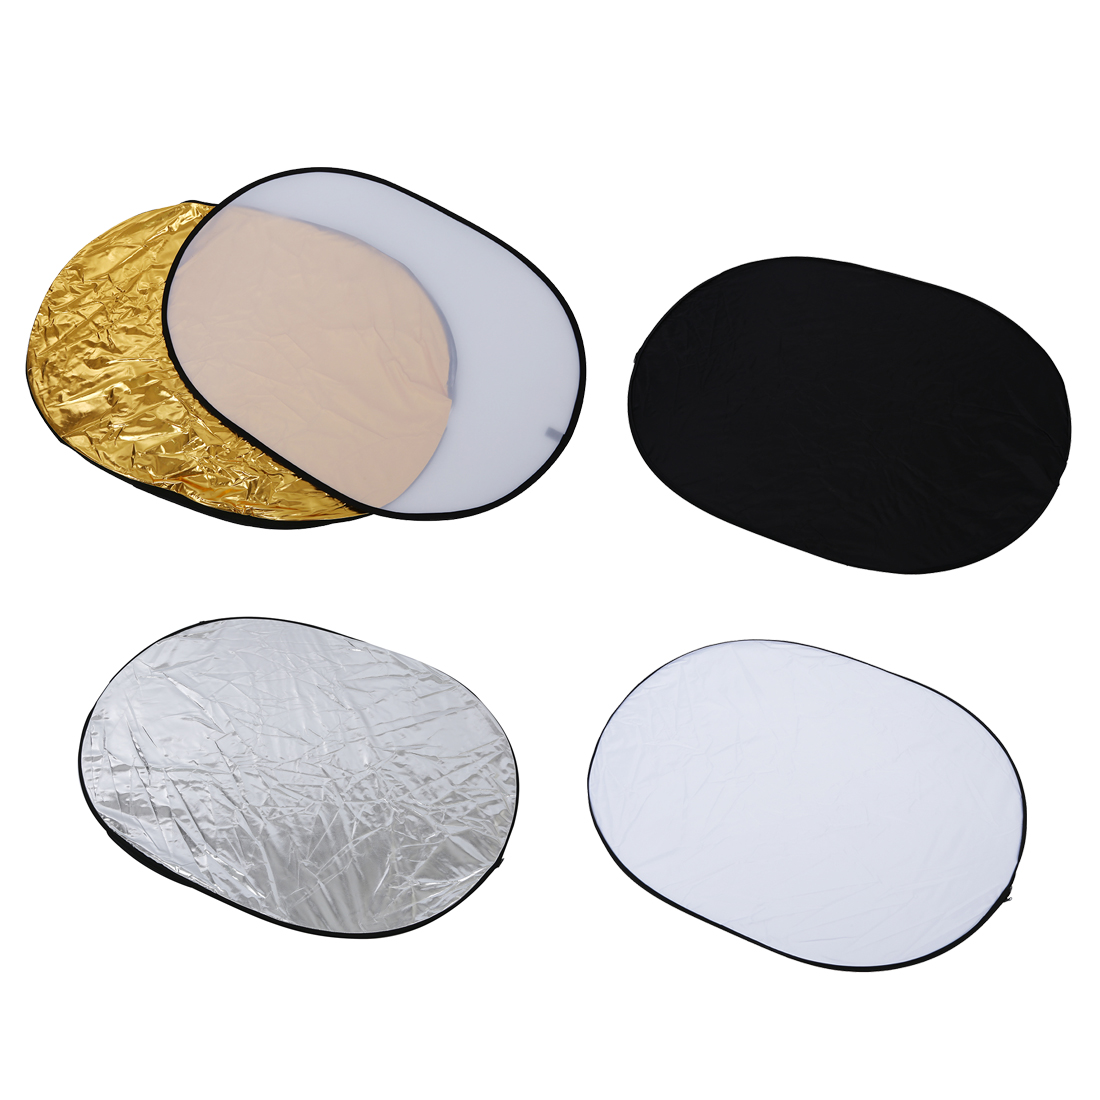 5 in 1 collapsible reflector oval photo studio 90 x 120 cm (35 x 47 ') stunningcast size high 25 cm x 28 cm x 19 cms